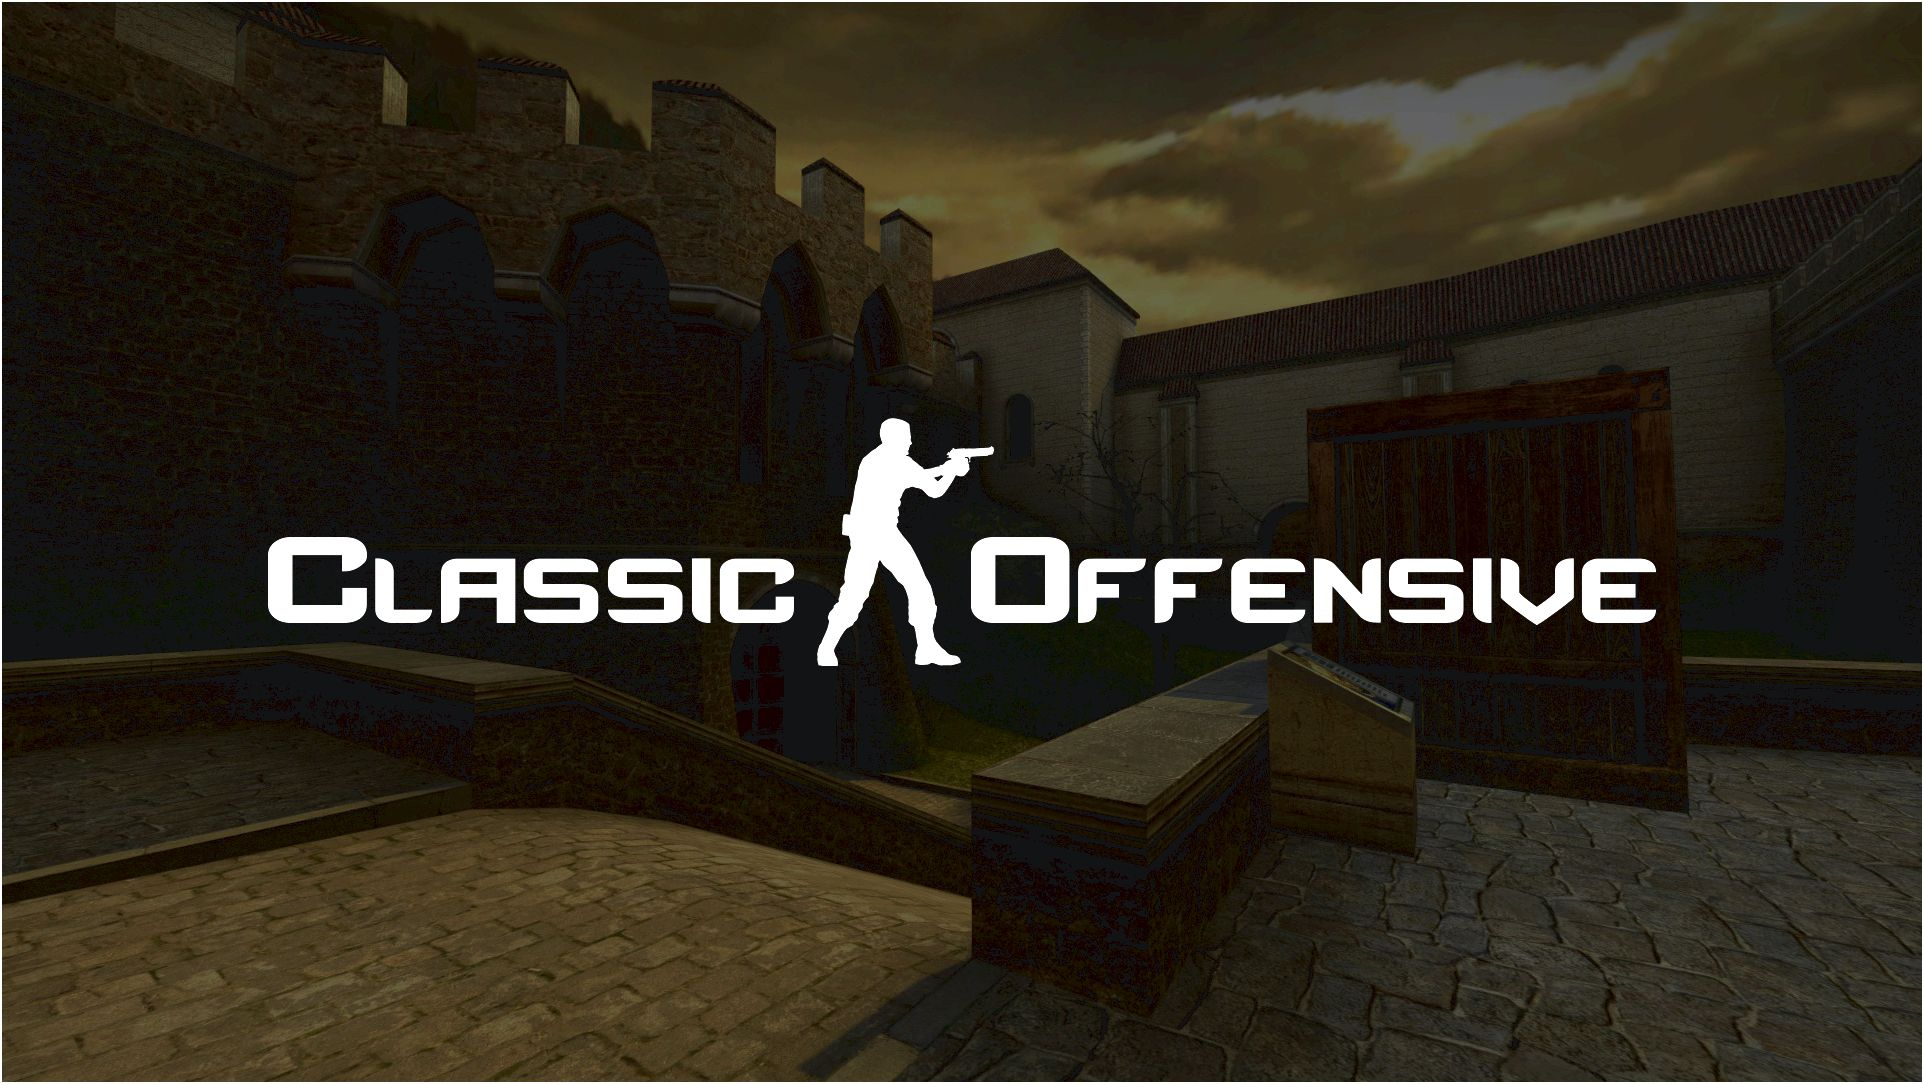 Classic offensive mod - mod db the nostalgia and fixing